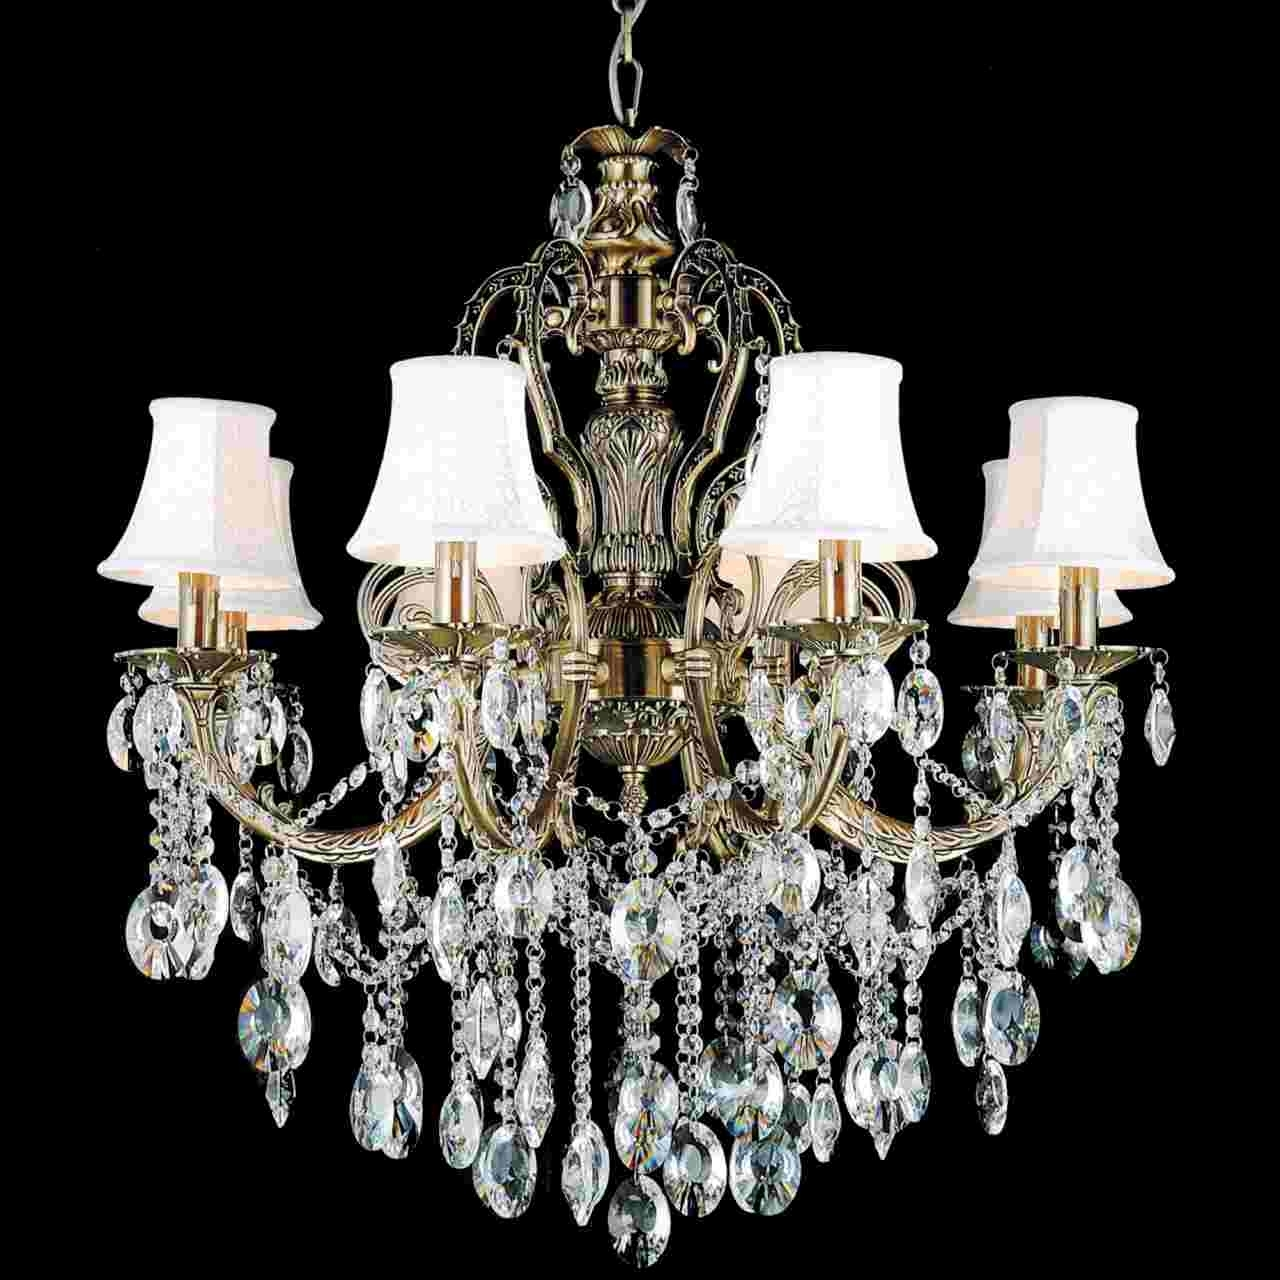 Best And Newest Chandelier Lampshades Regarding Brizzo Lighting Stores (View 2 of 15)